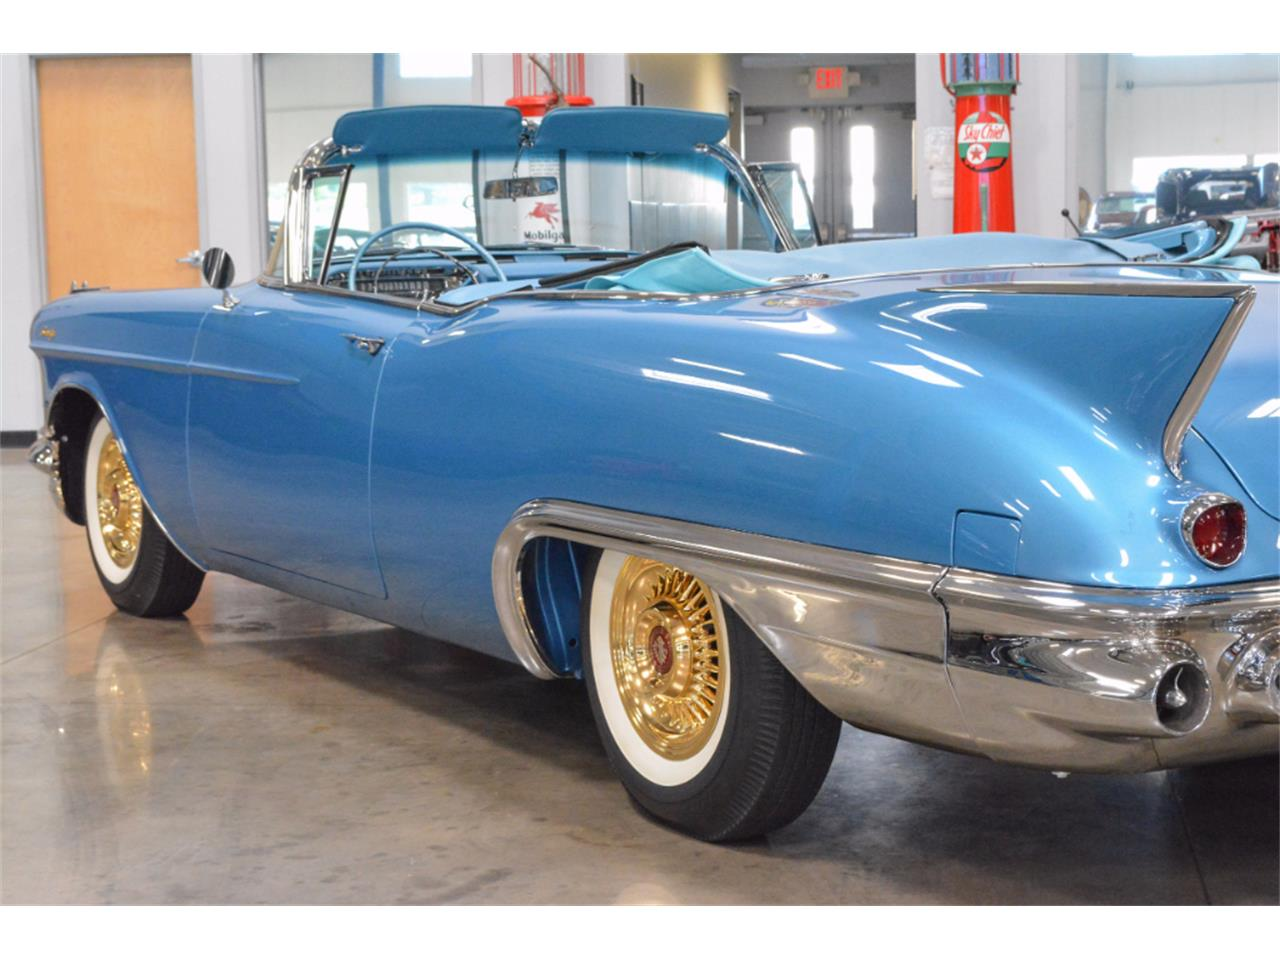 Large Picture of Classic 1957 Cadillac Eldorado located in Ohio Auction Vehicle Offered by John Kufleitner's Galleria - LKLZ